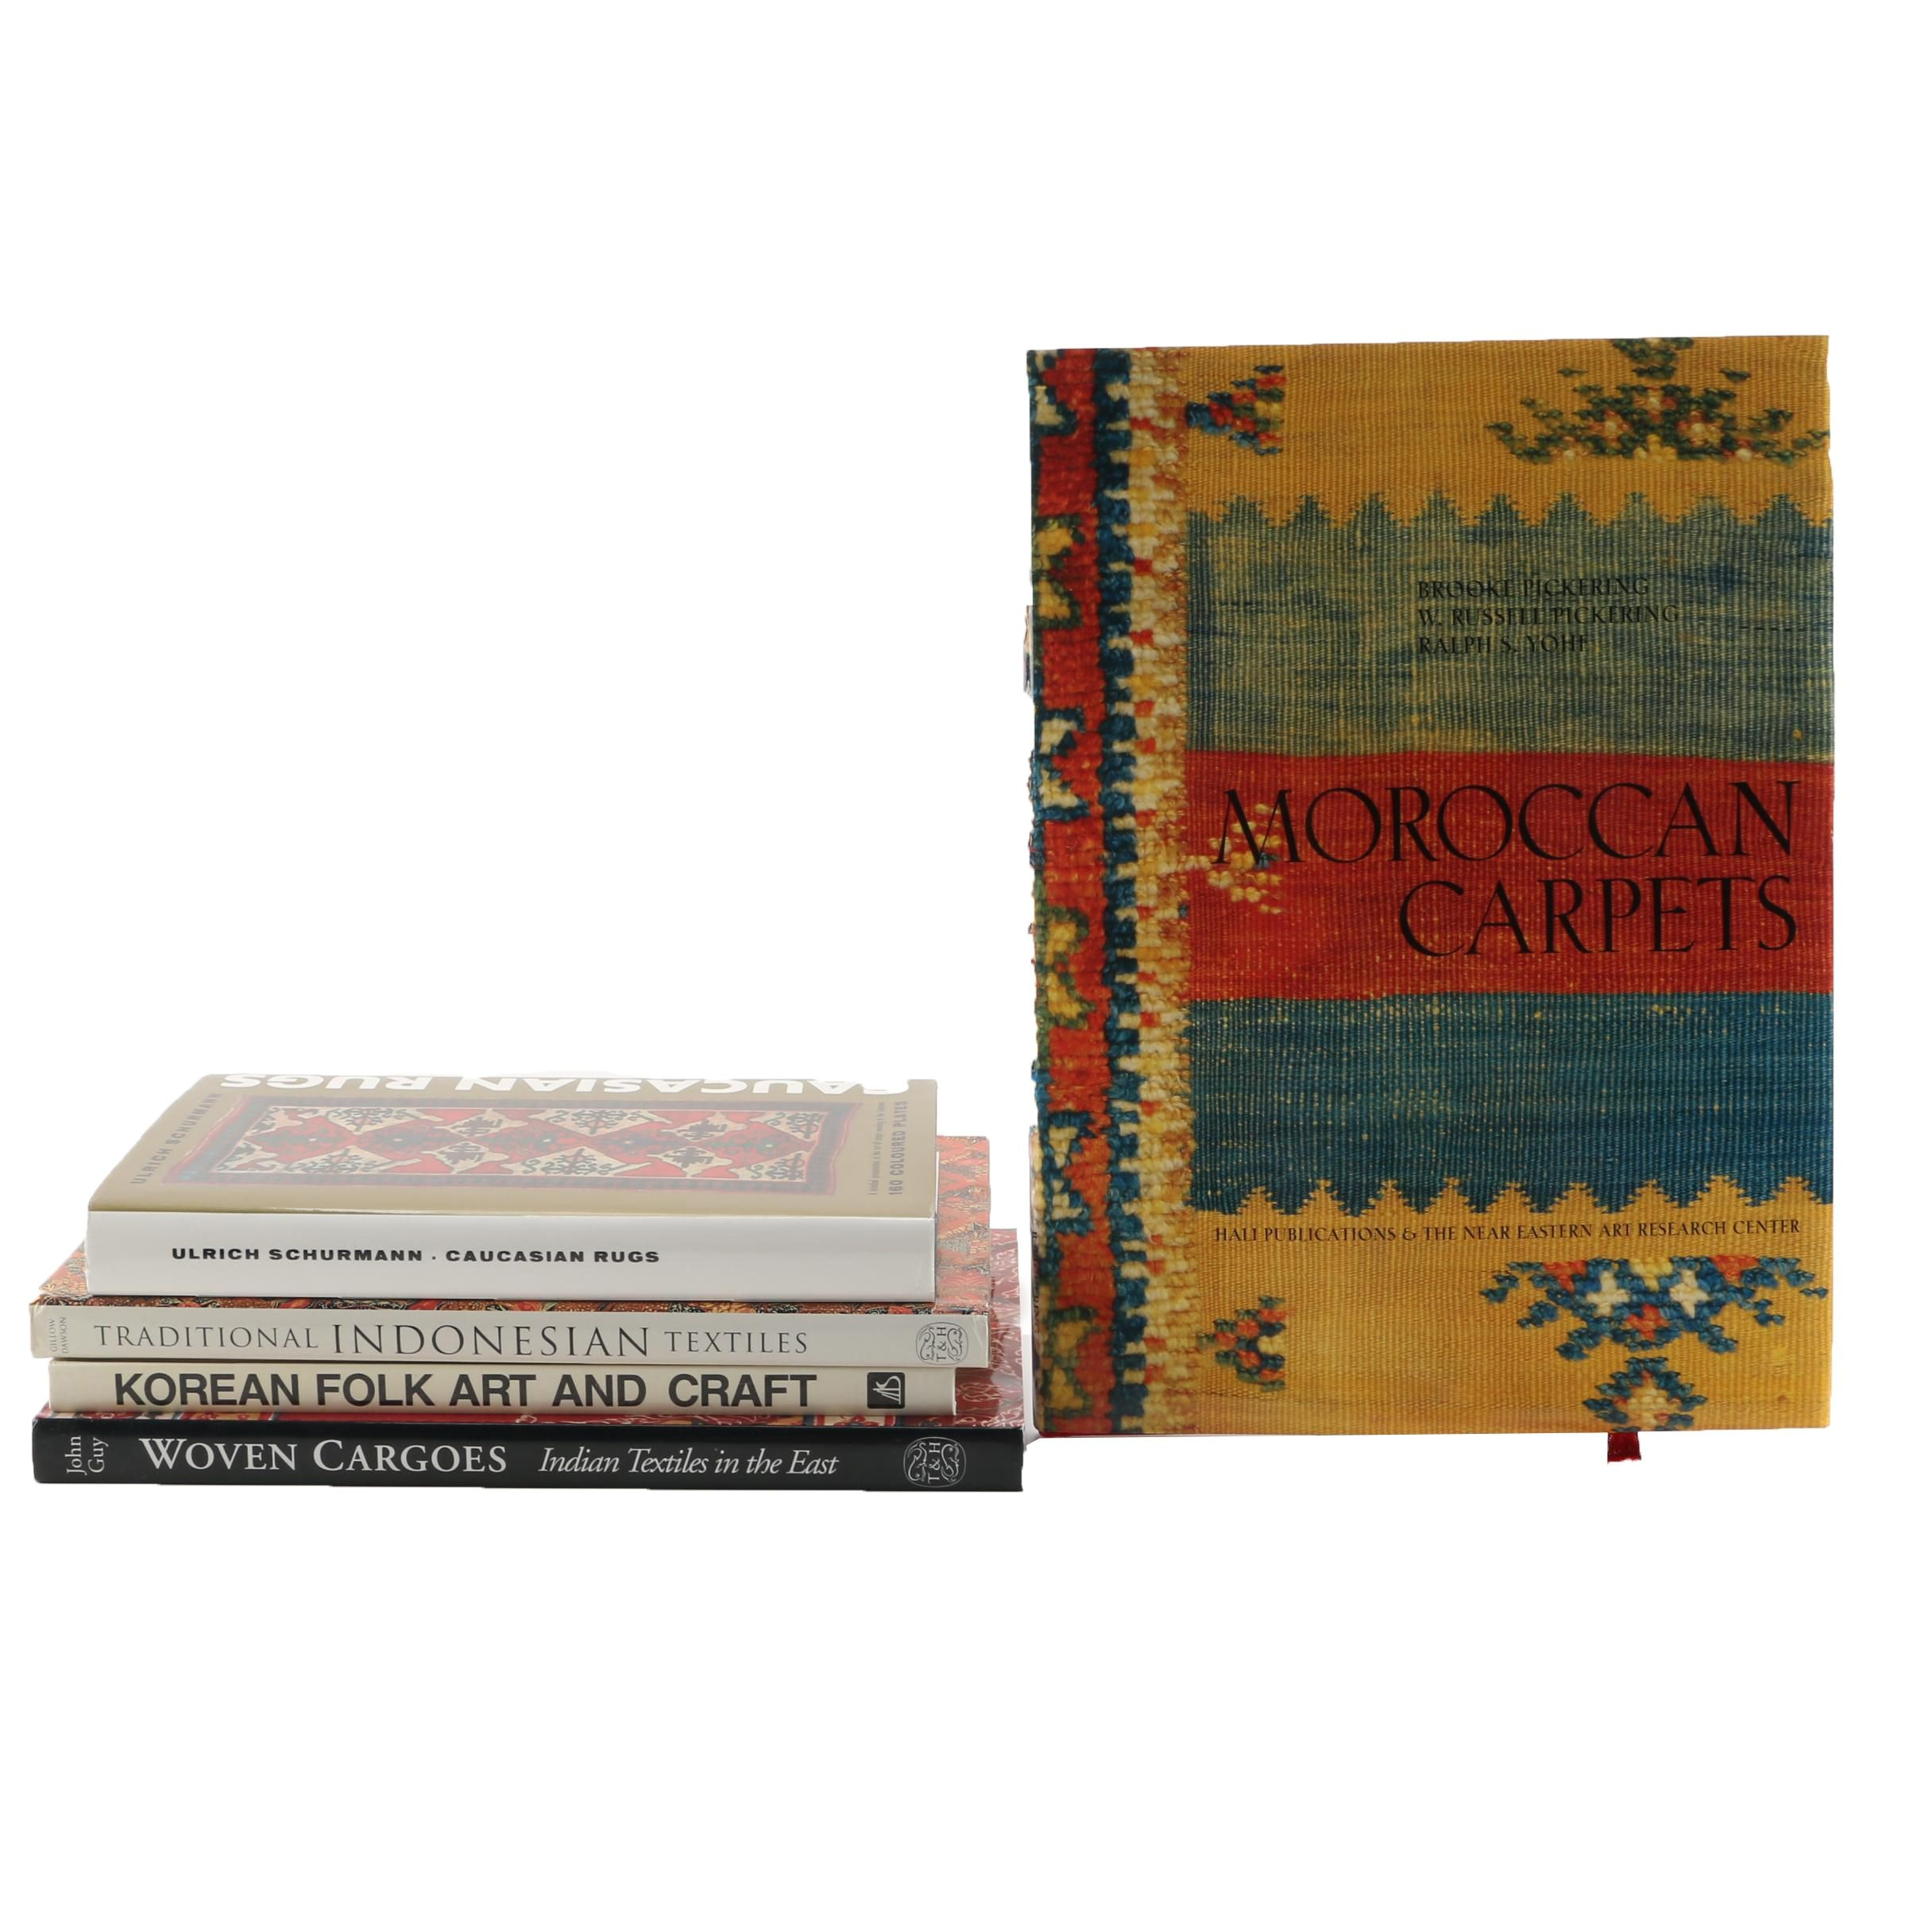 """Moroccan Carpets"" and Other Books on Oriental Rugs and Textiles"